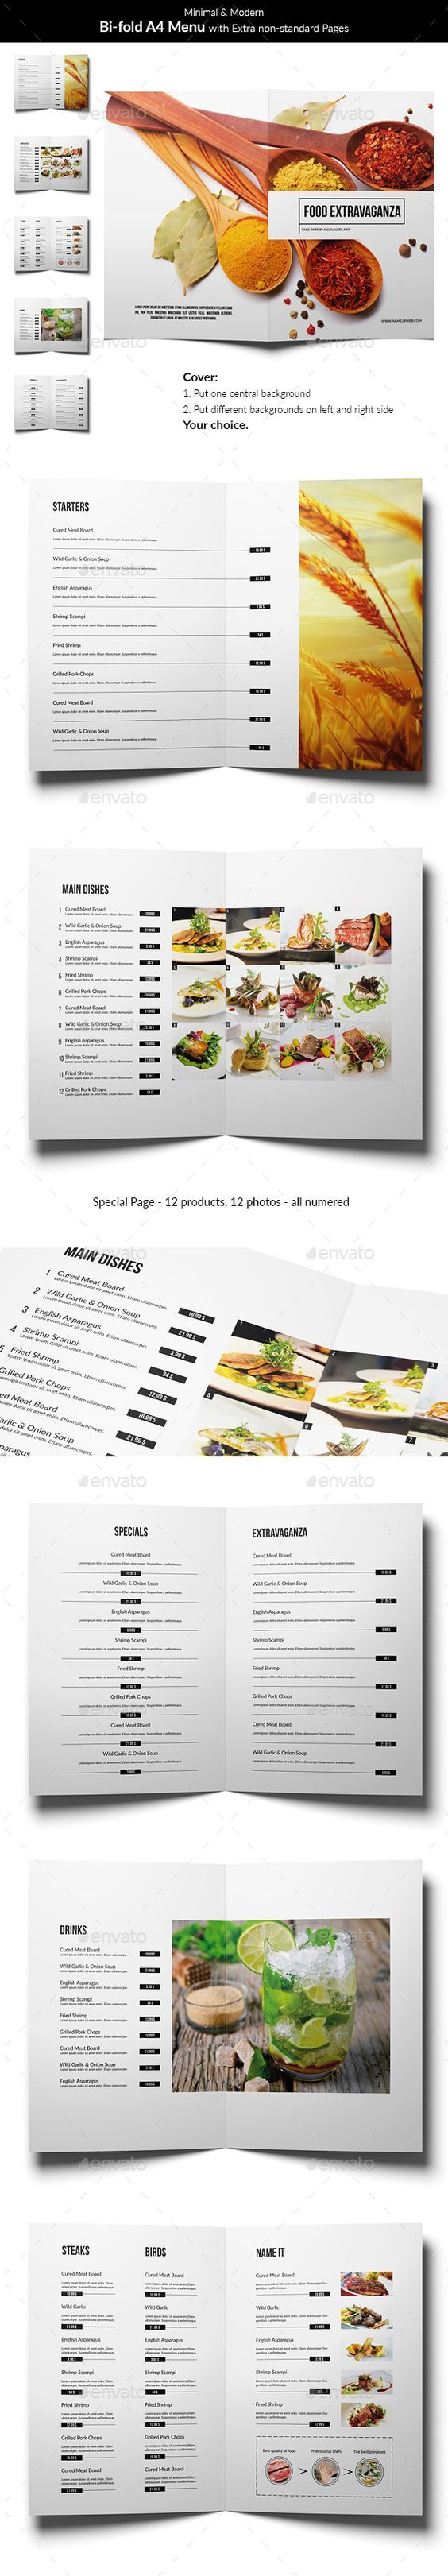 Bright and fruitful colors are appealing when making restaurant menu designs